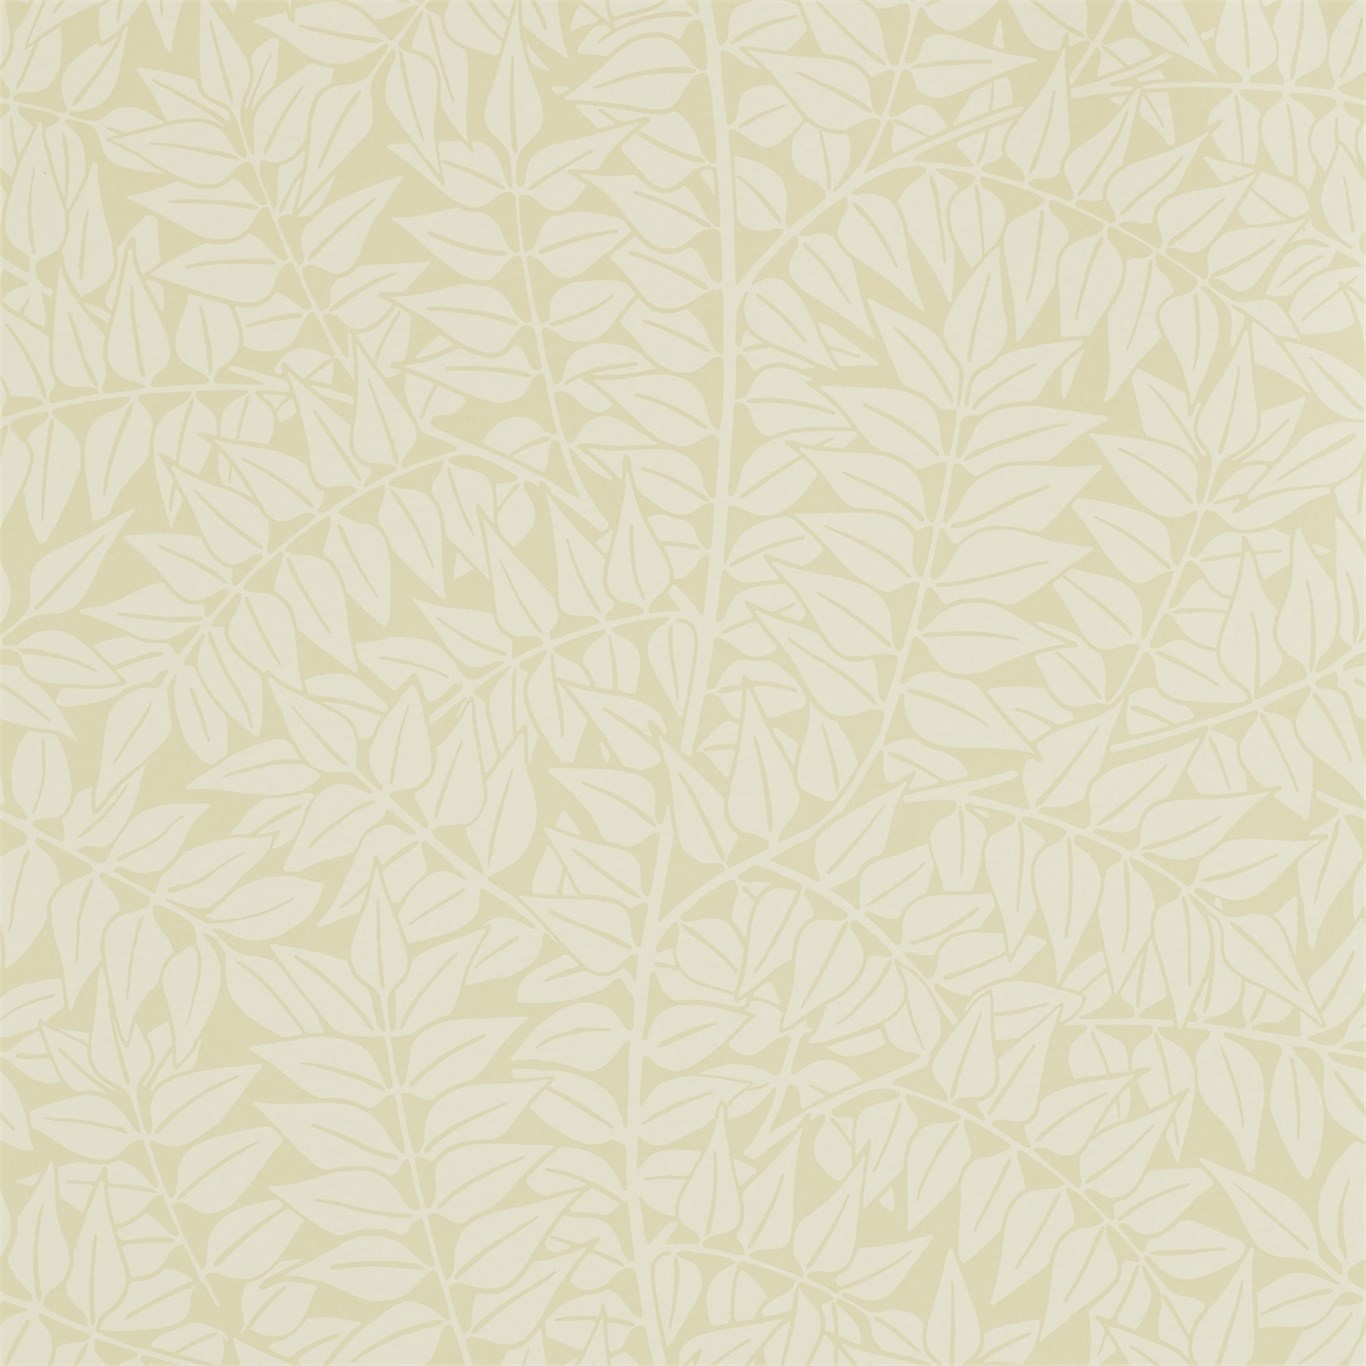 Image of Morris & Co Branch Tempera Cream Wallpaper 210378